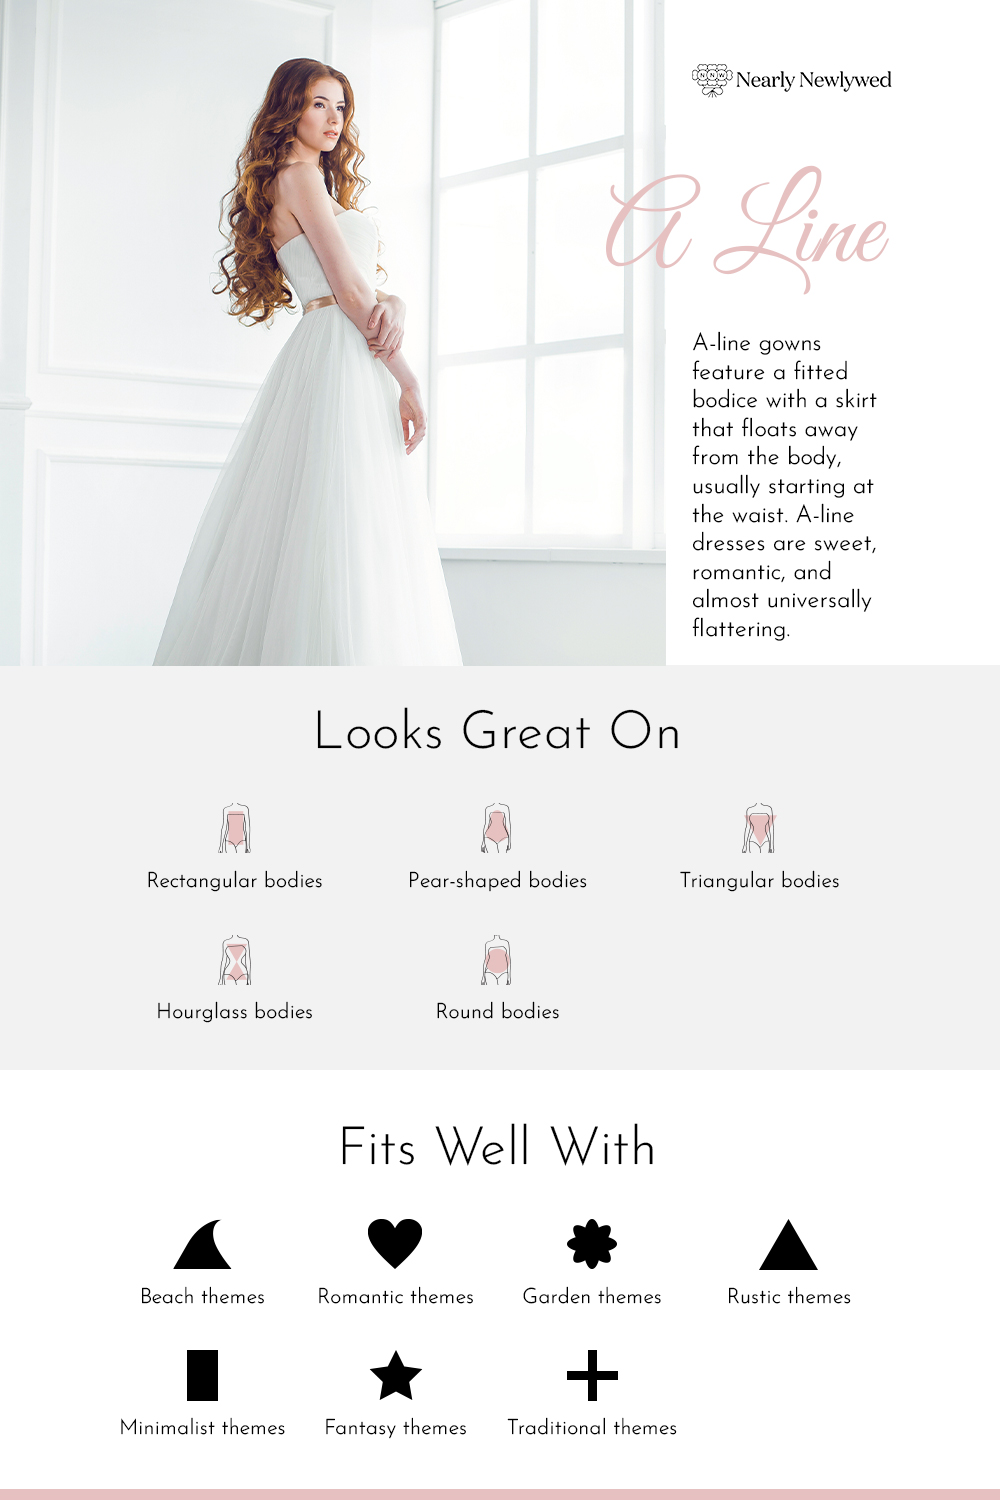 A-Line Wedding Dress Silhouette Infographic